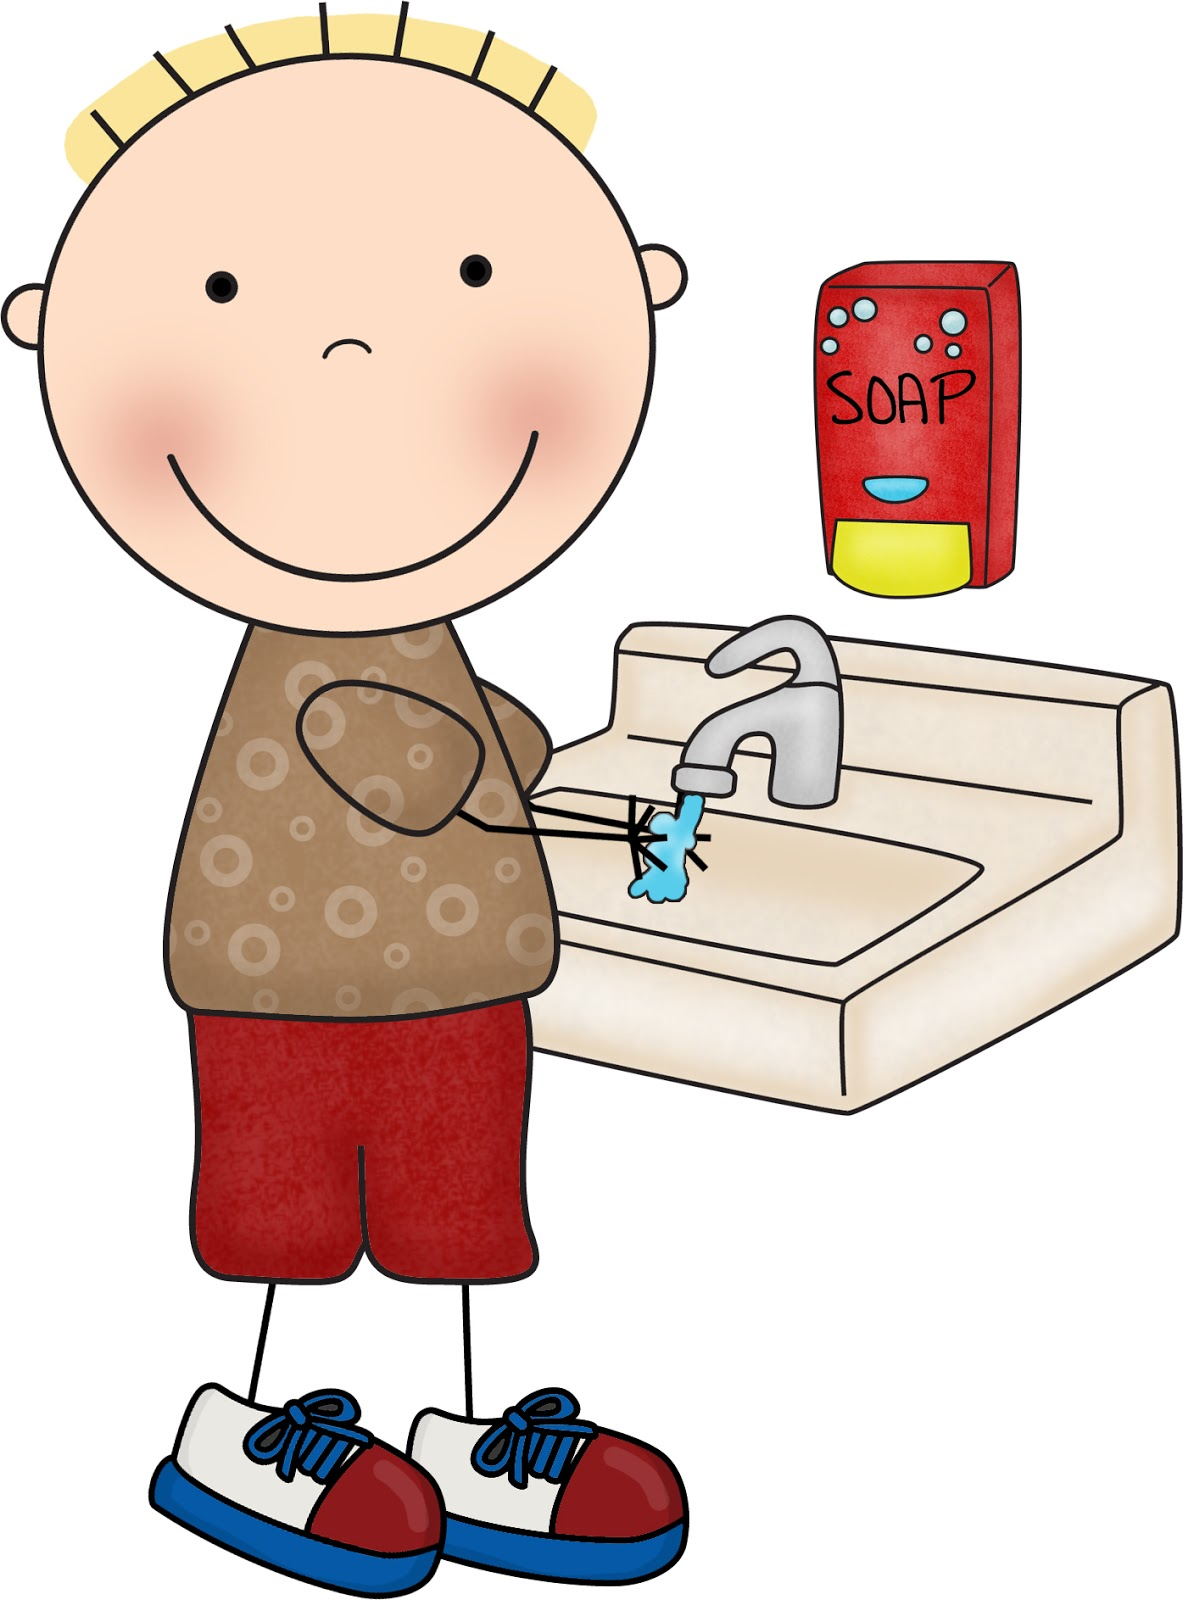 Washing hands clipart small png library stock Free Washing Hands Cliparts, Download Free Clip Art, Free ... png library stock